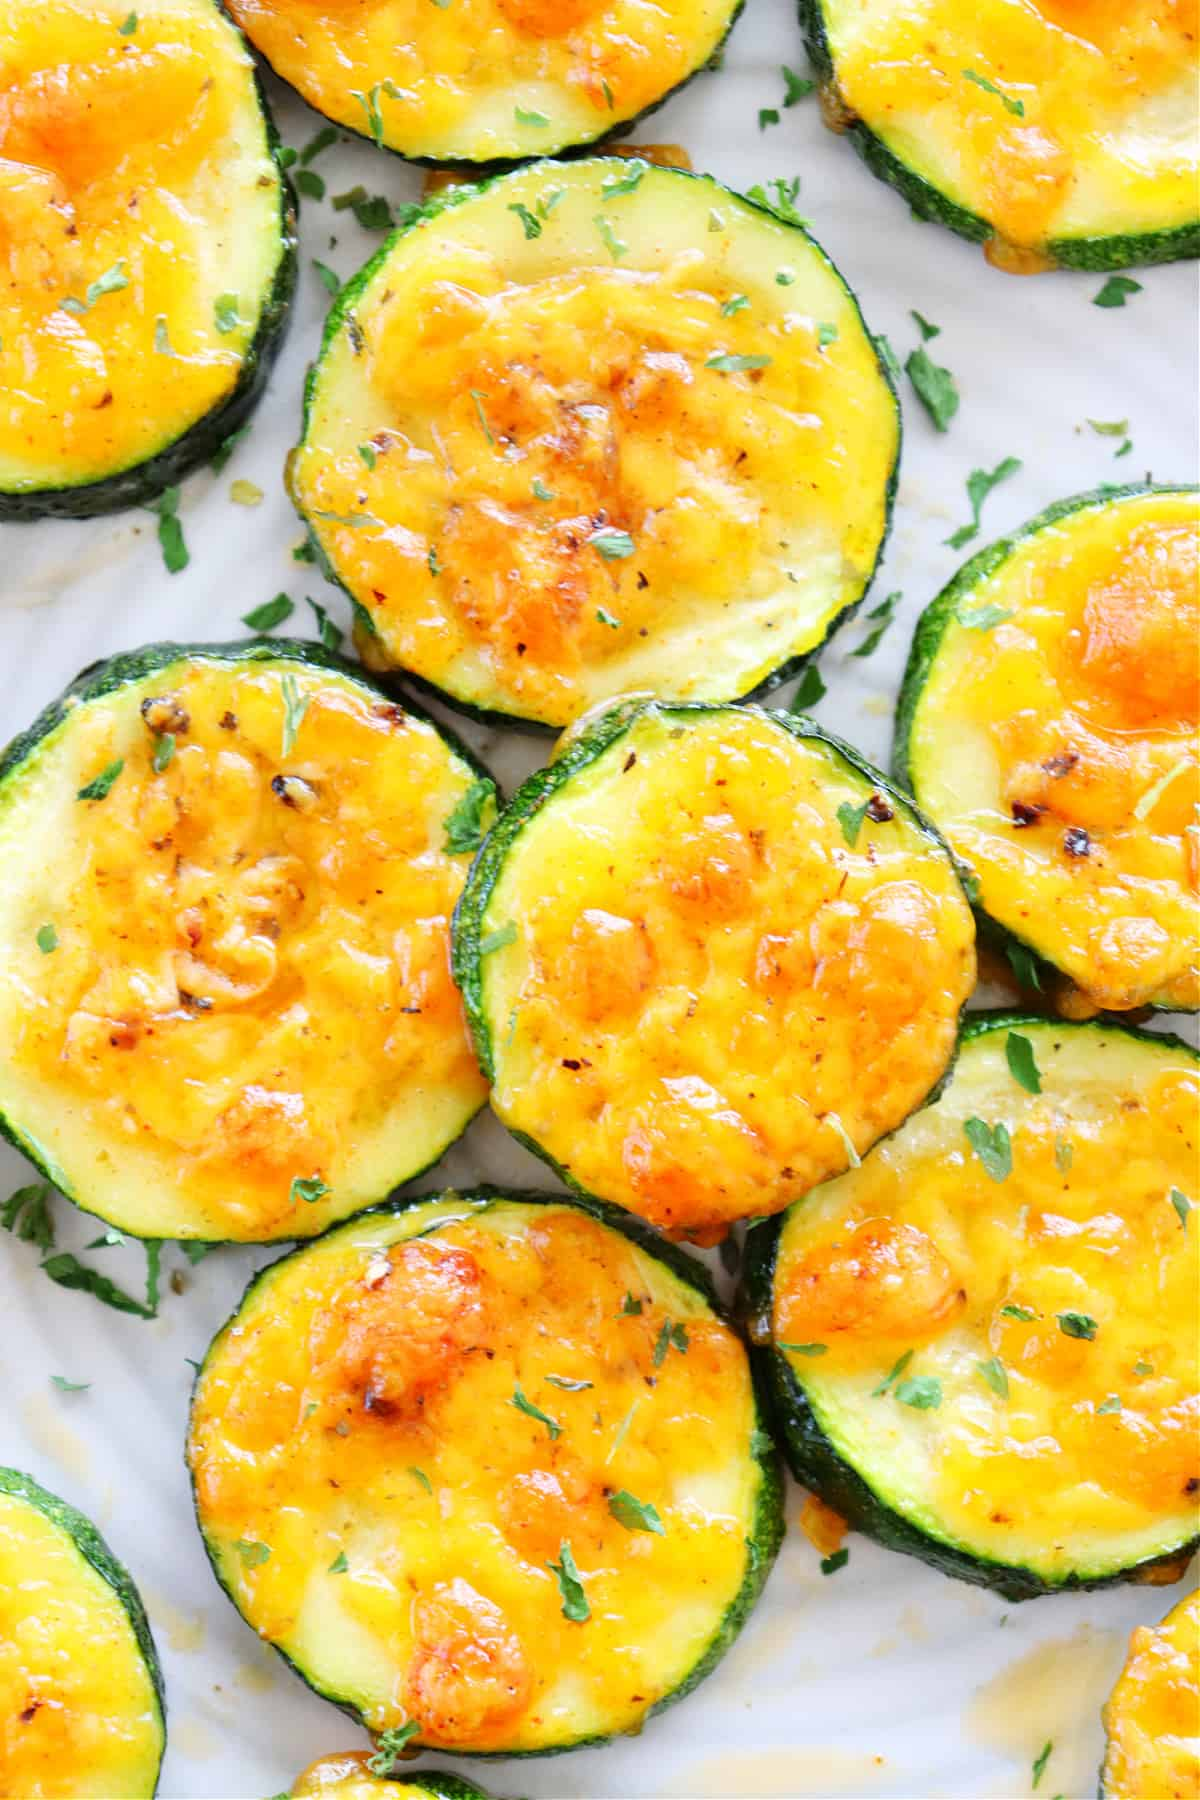 baked zucchini 1 Cheddar Baked Zucchini